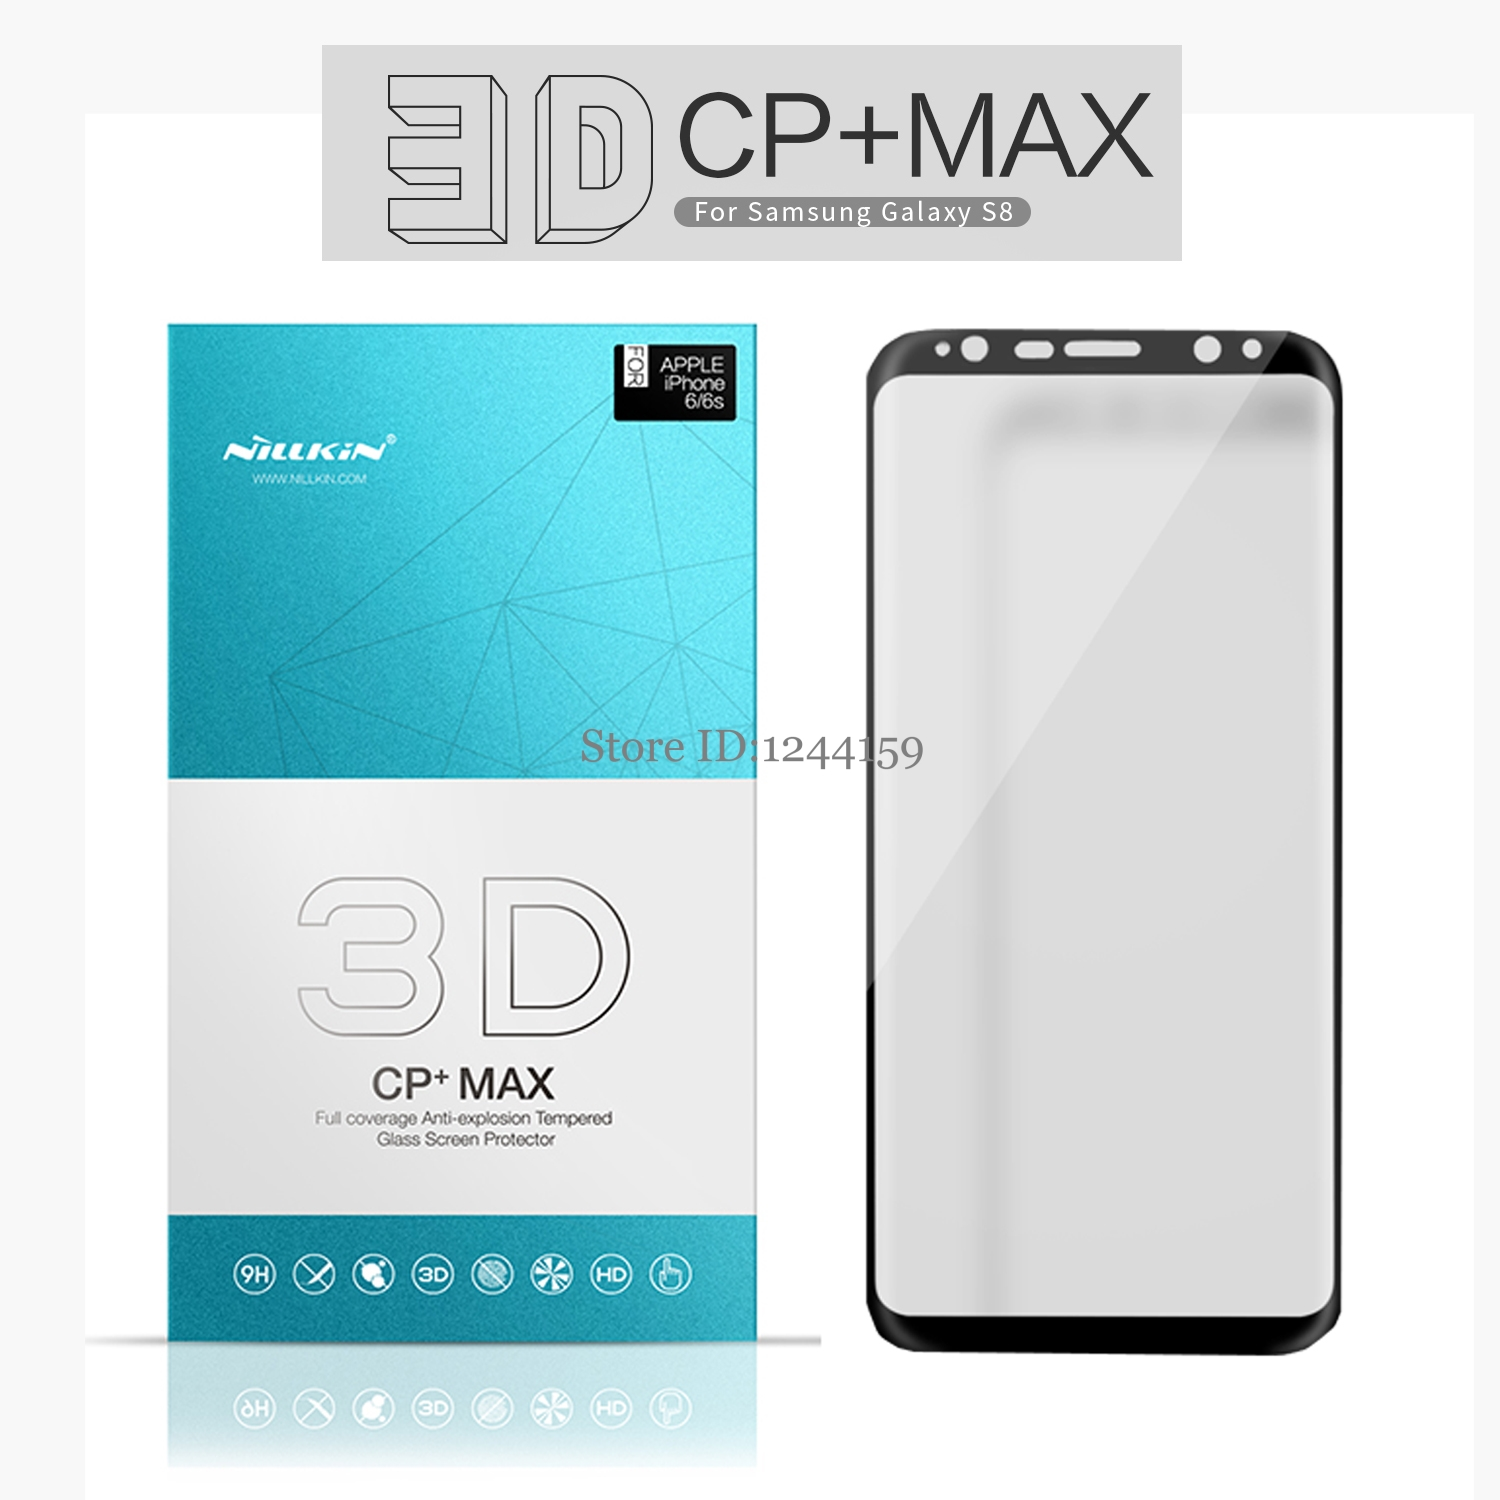 Nillkin Amazing 3d Cp Max Nanometer Anti Explosion 9h Tempered Gores Glass Huawei P10 Plus H Pro 02mm Original Sfor Samsung Galaxy S8 S9 Full Cover Screen Protector